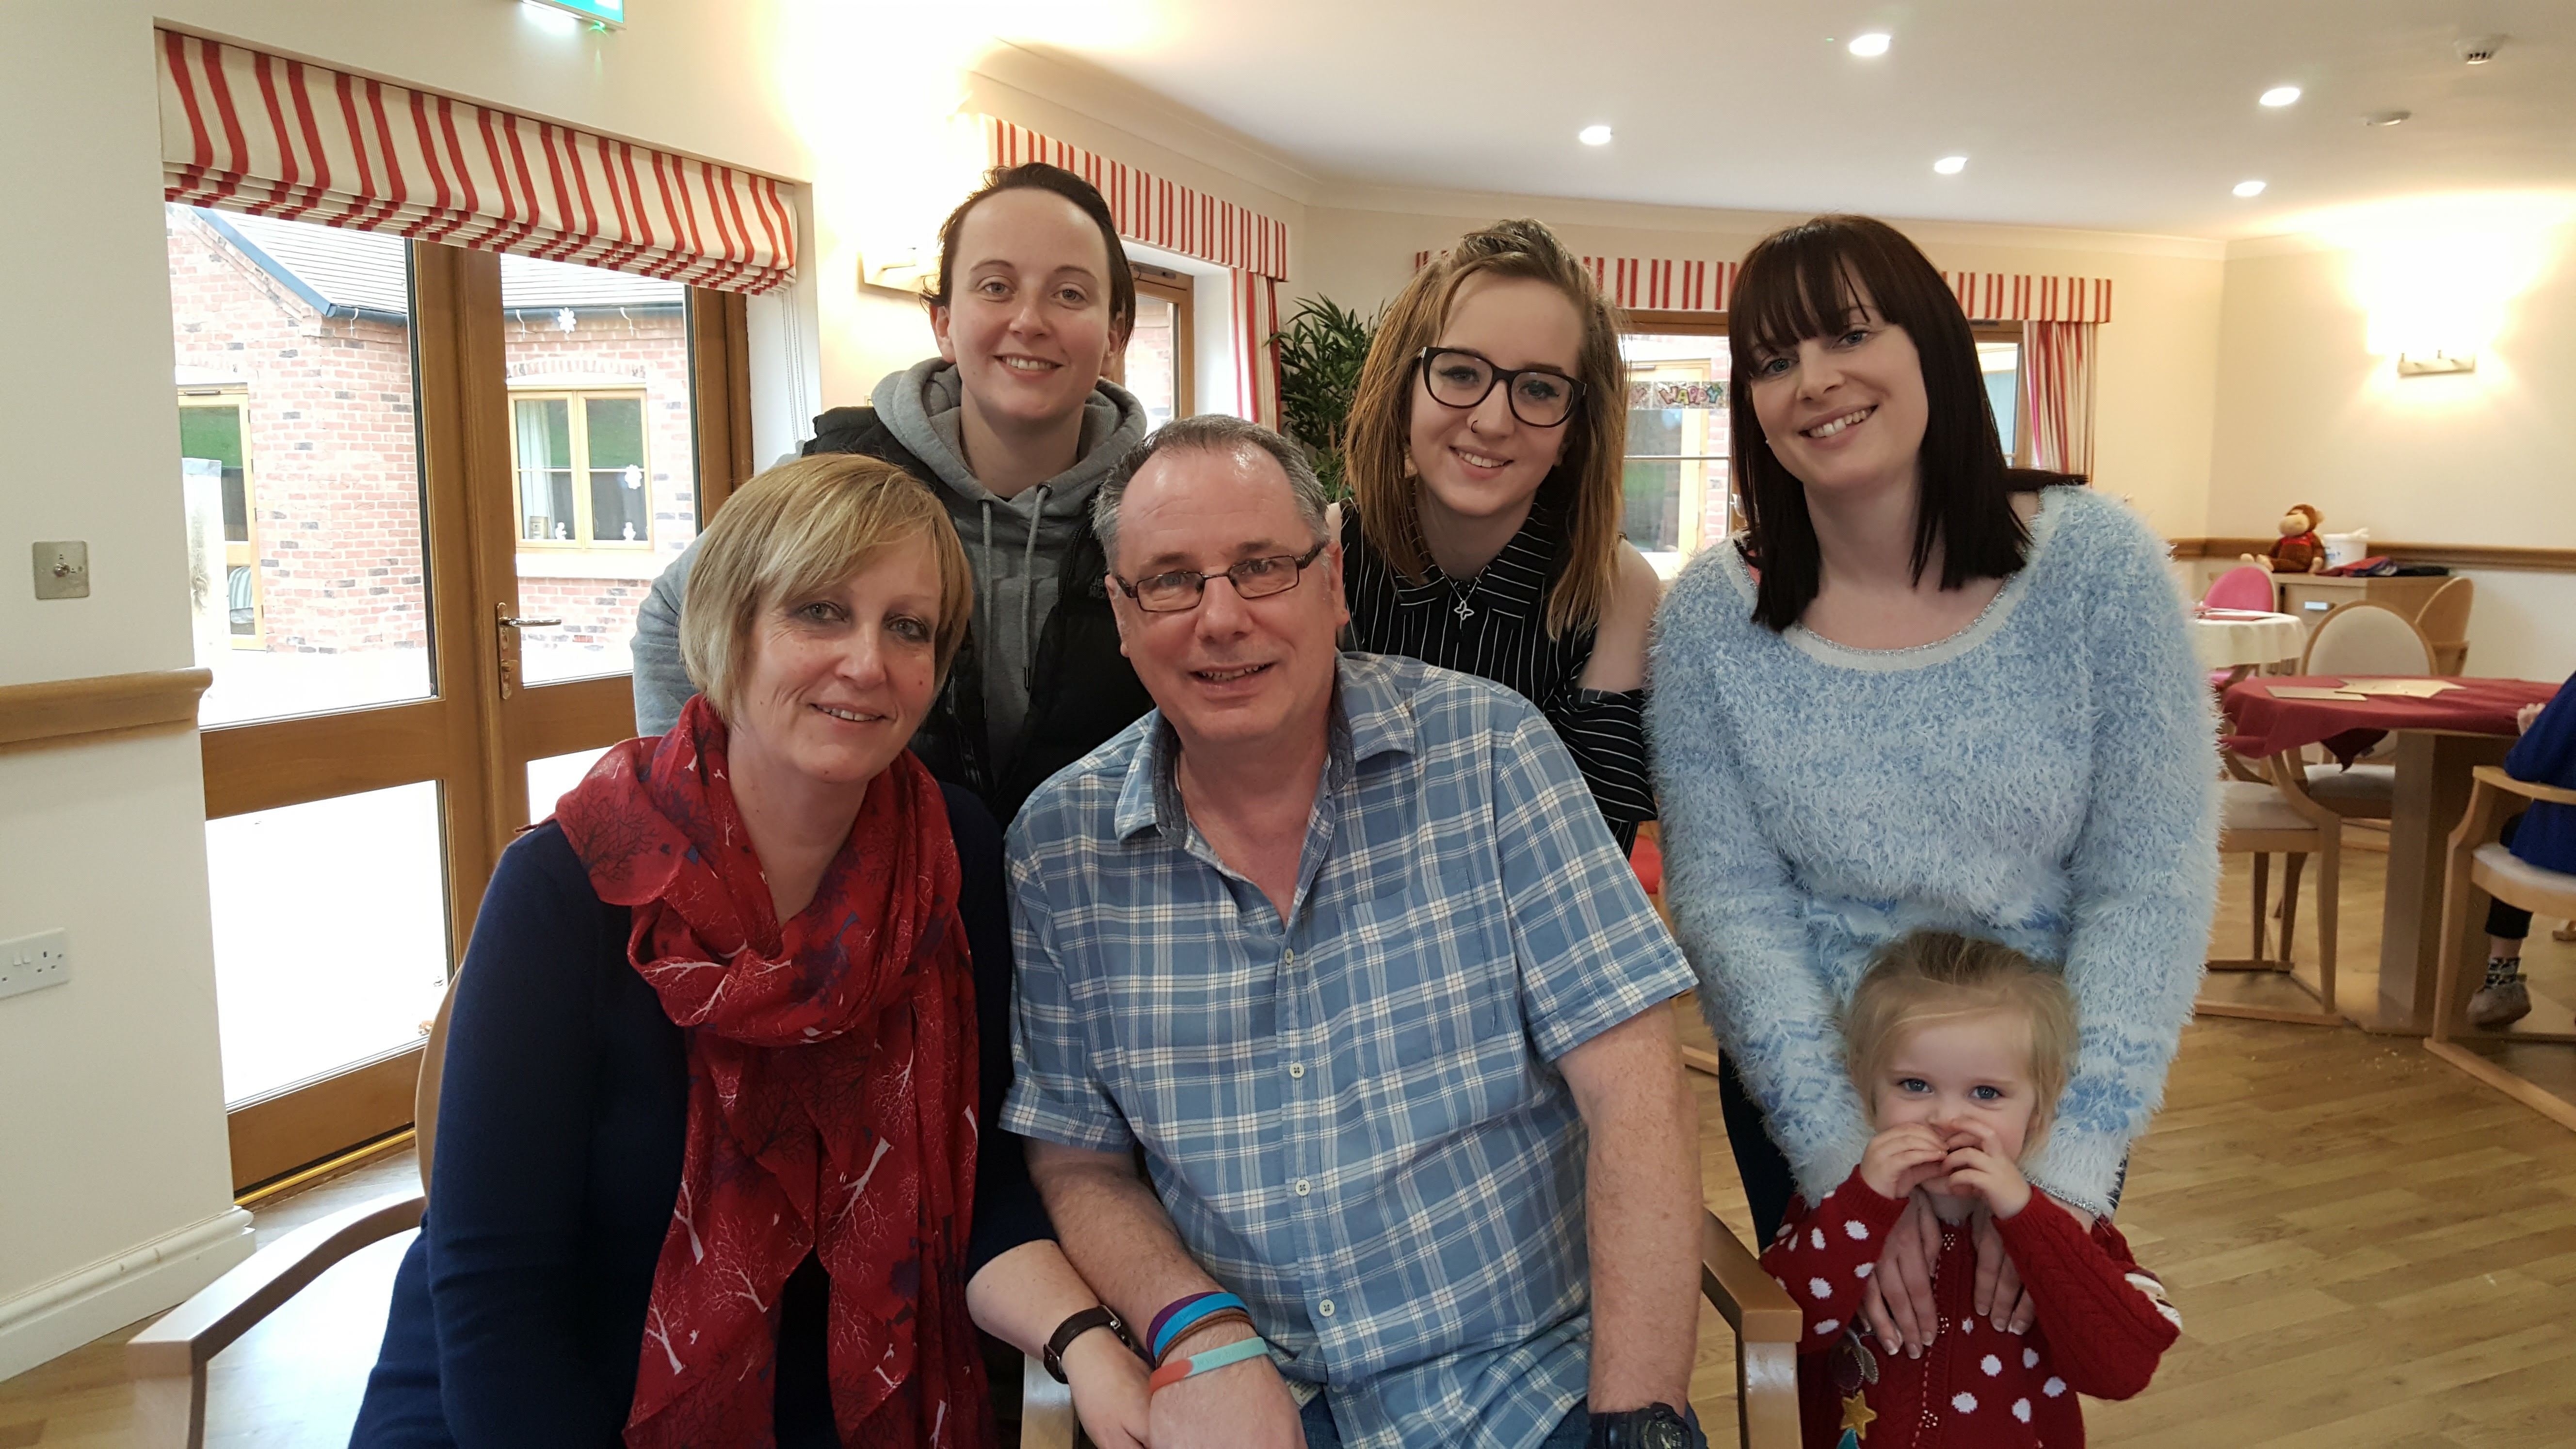 Barrowhill Hall keeps Christmas special for family living with young onset dementia